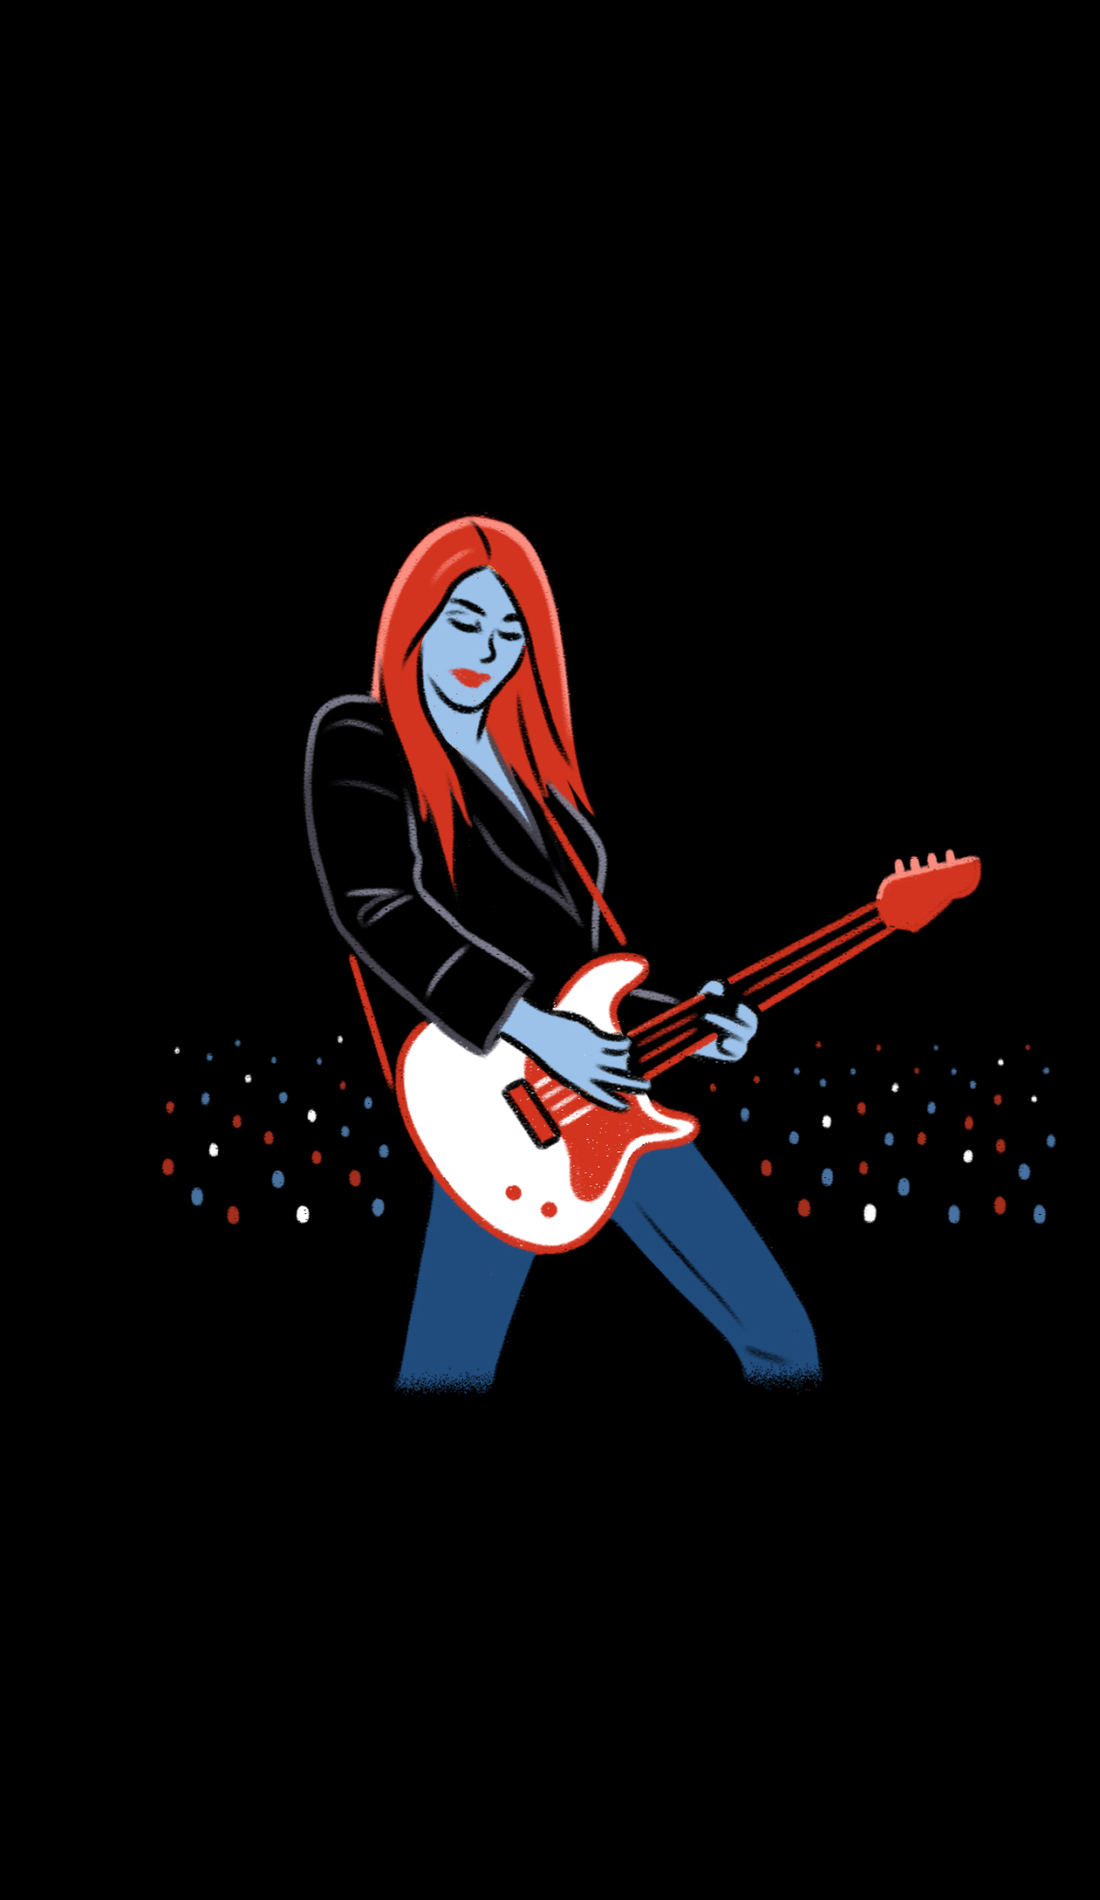 A Ringo Starr & His All Starr Band live event